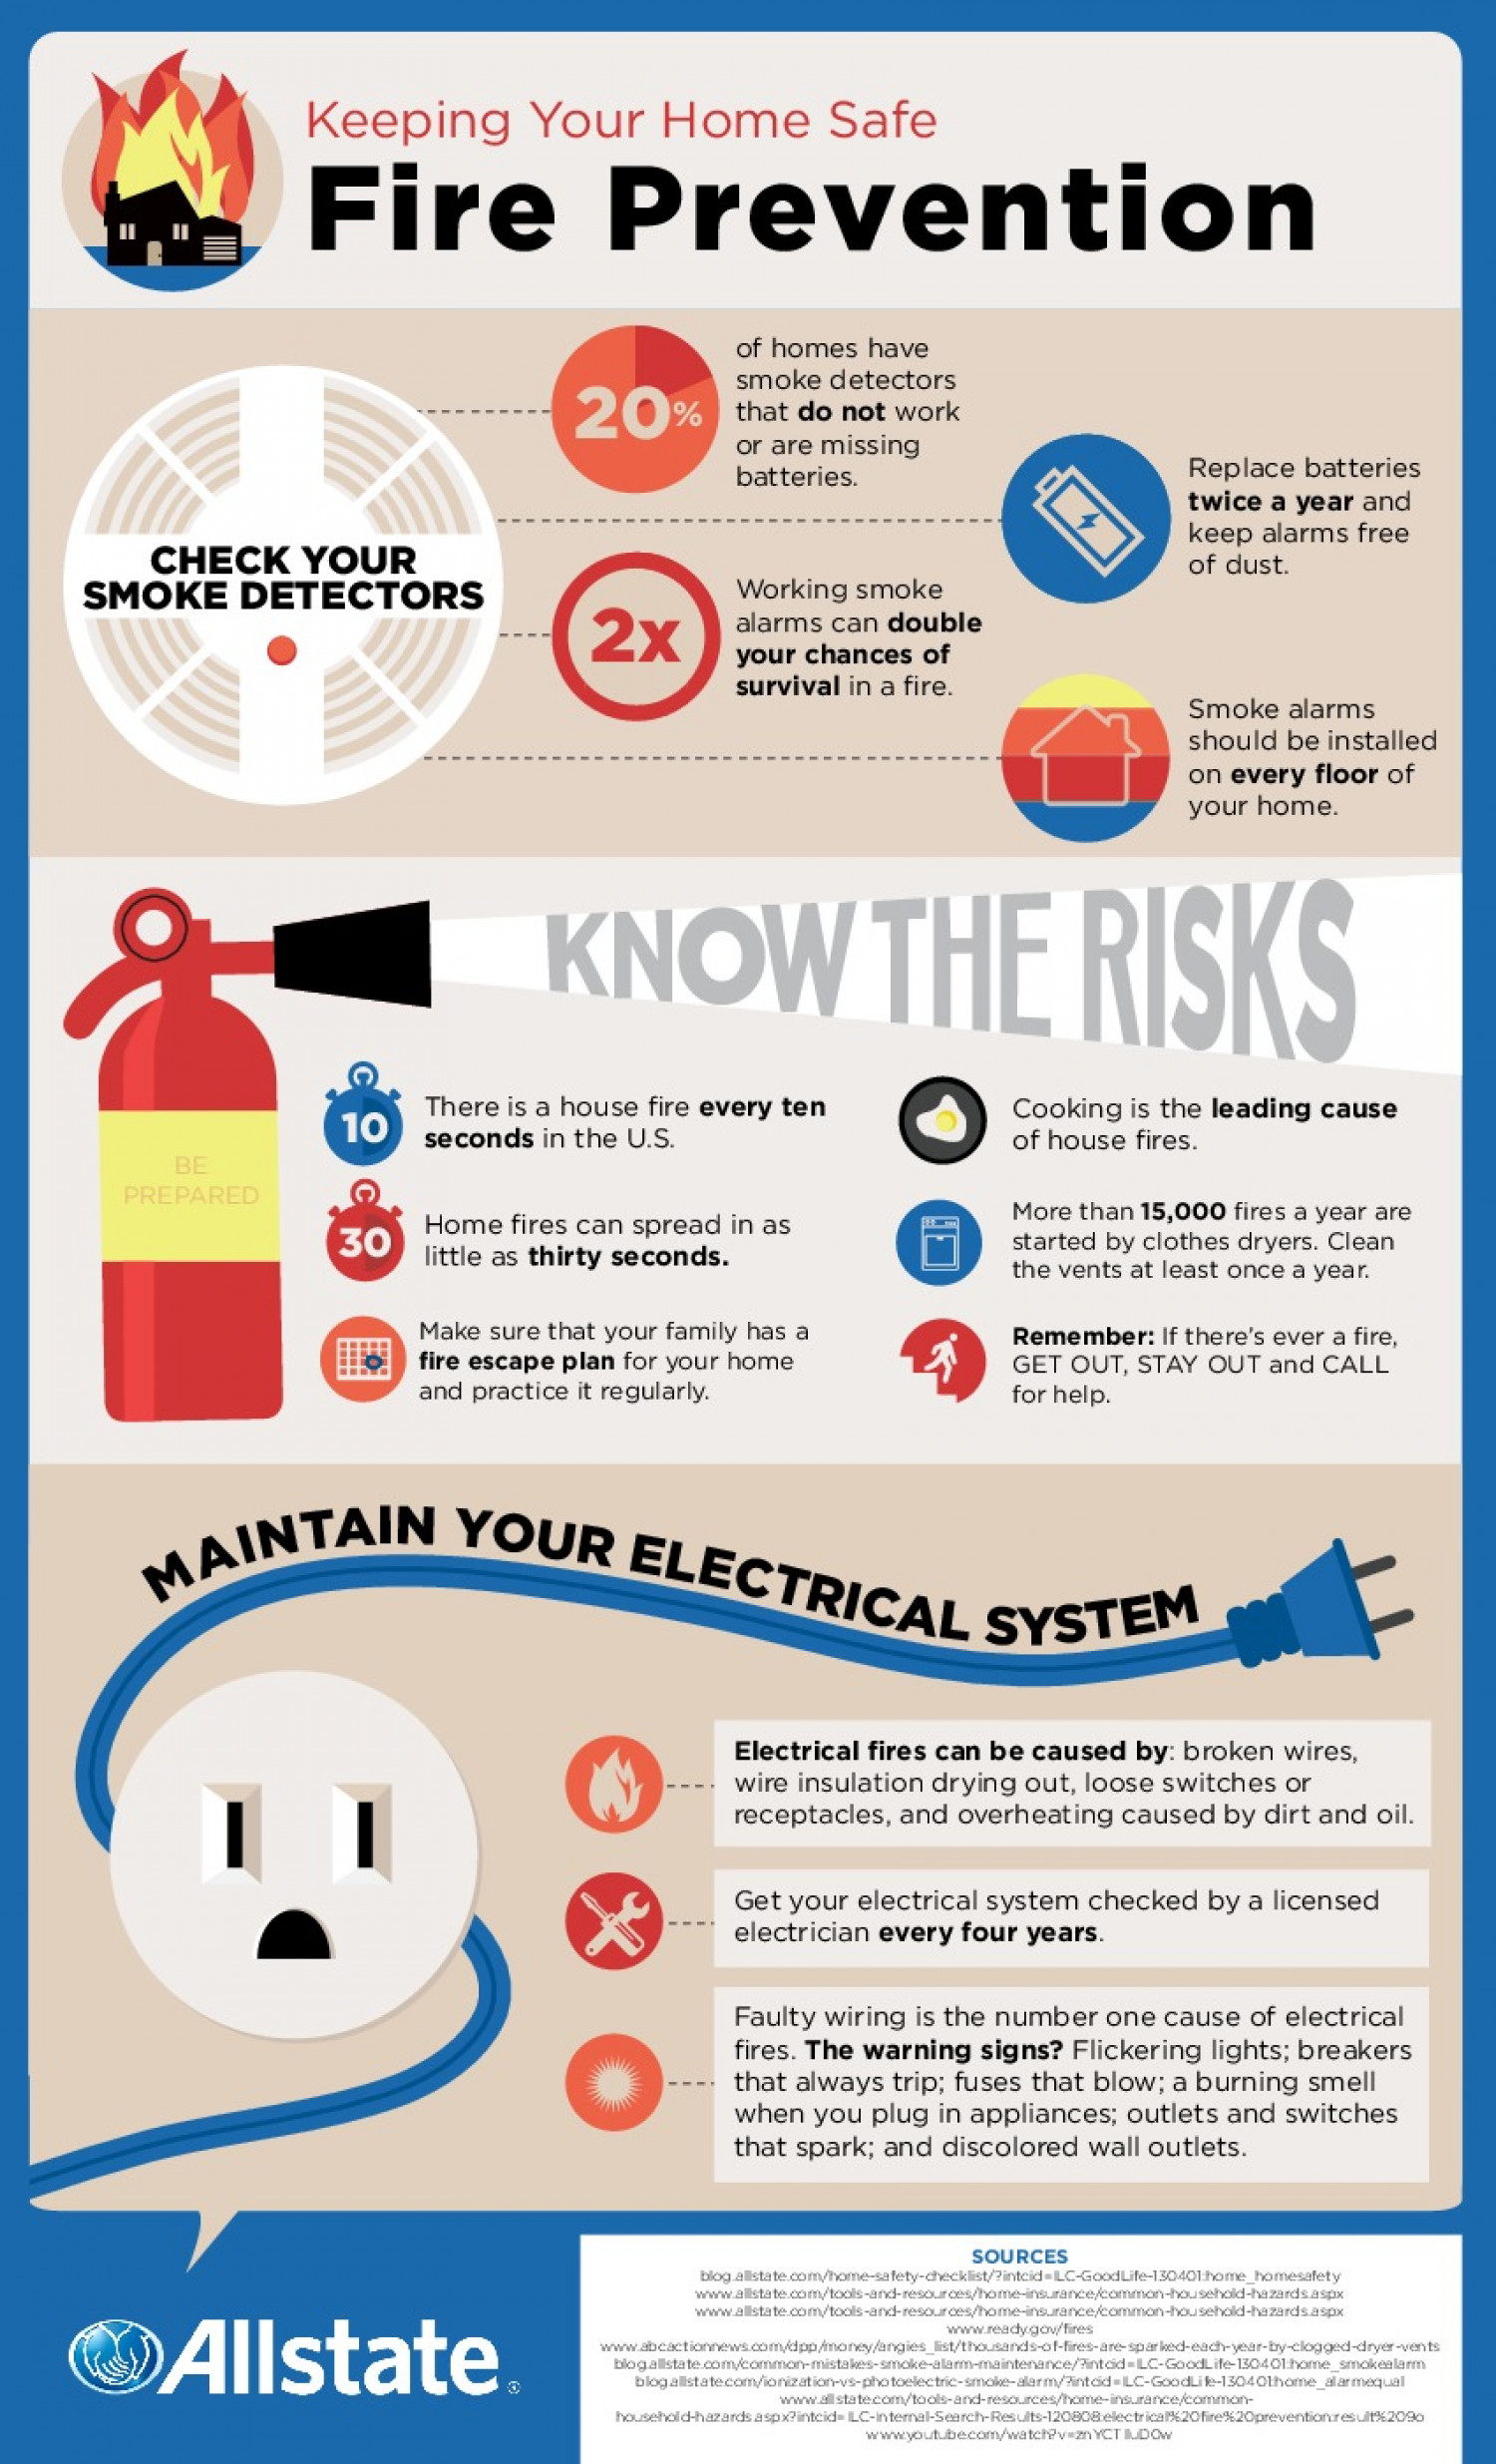 Fire Prevention Tips Infographic